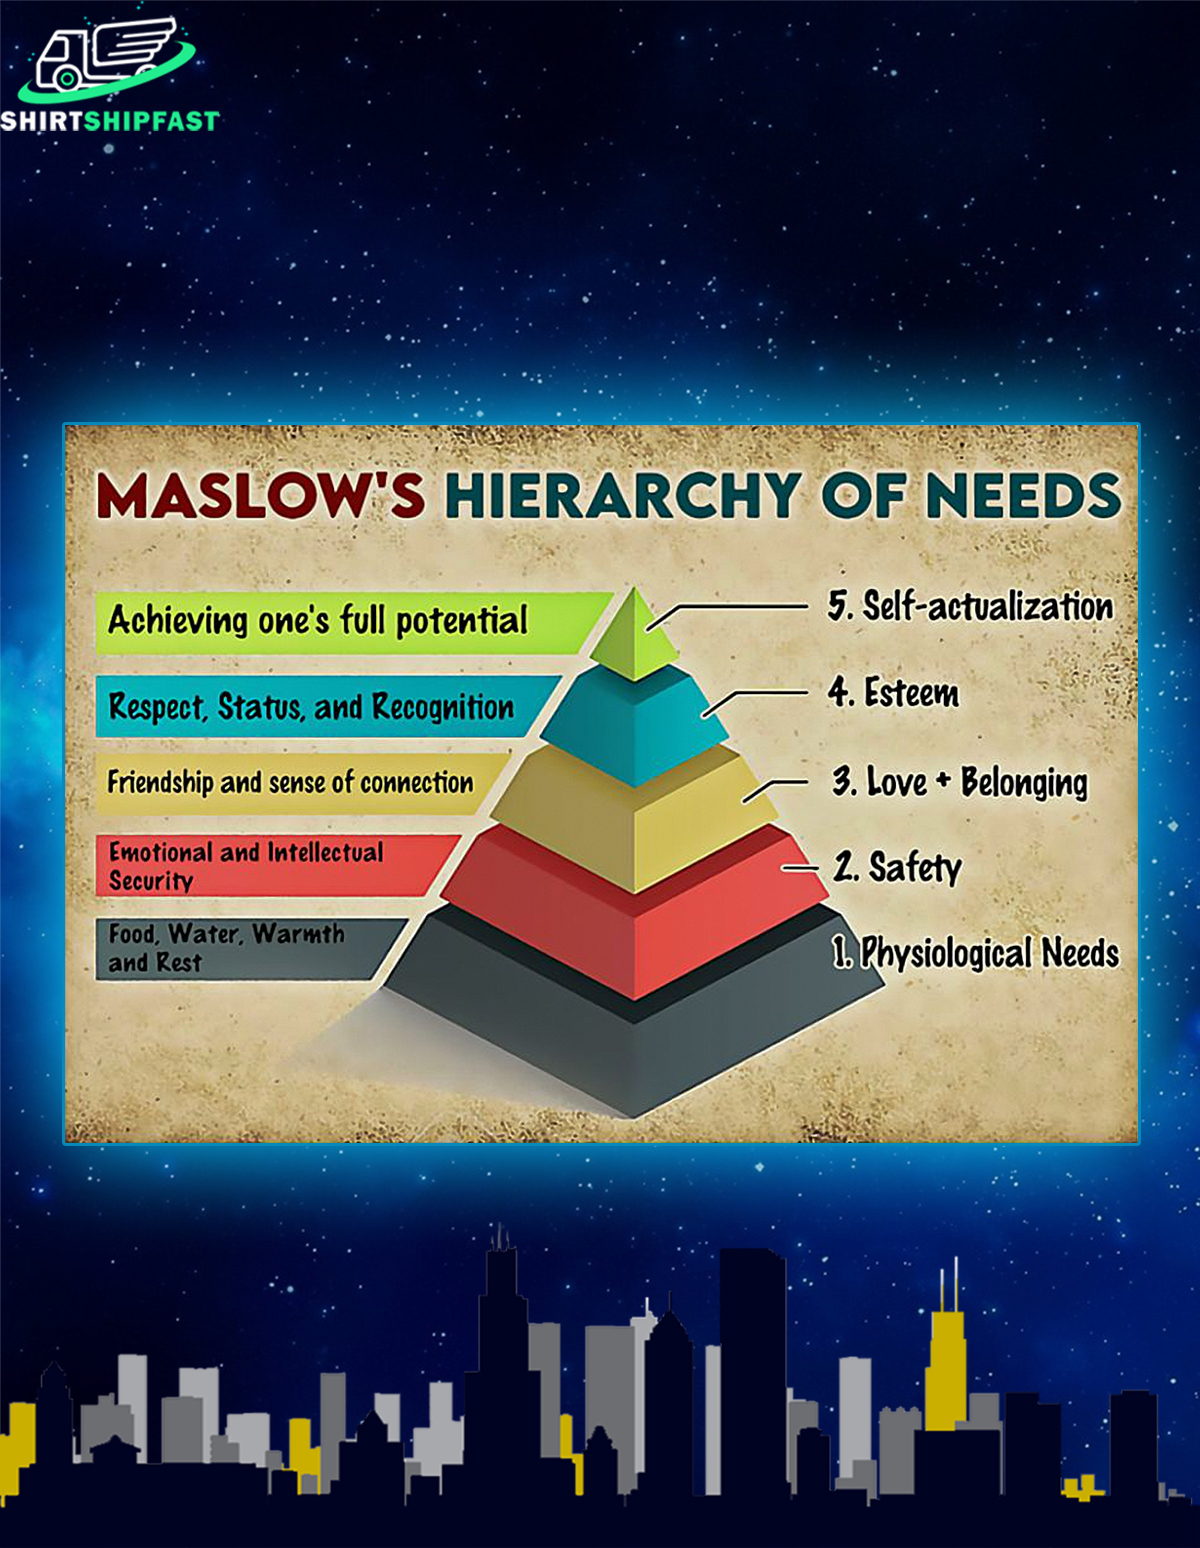 Social worker maslow's hierarchy of needs poster